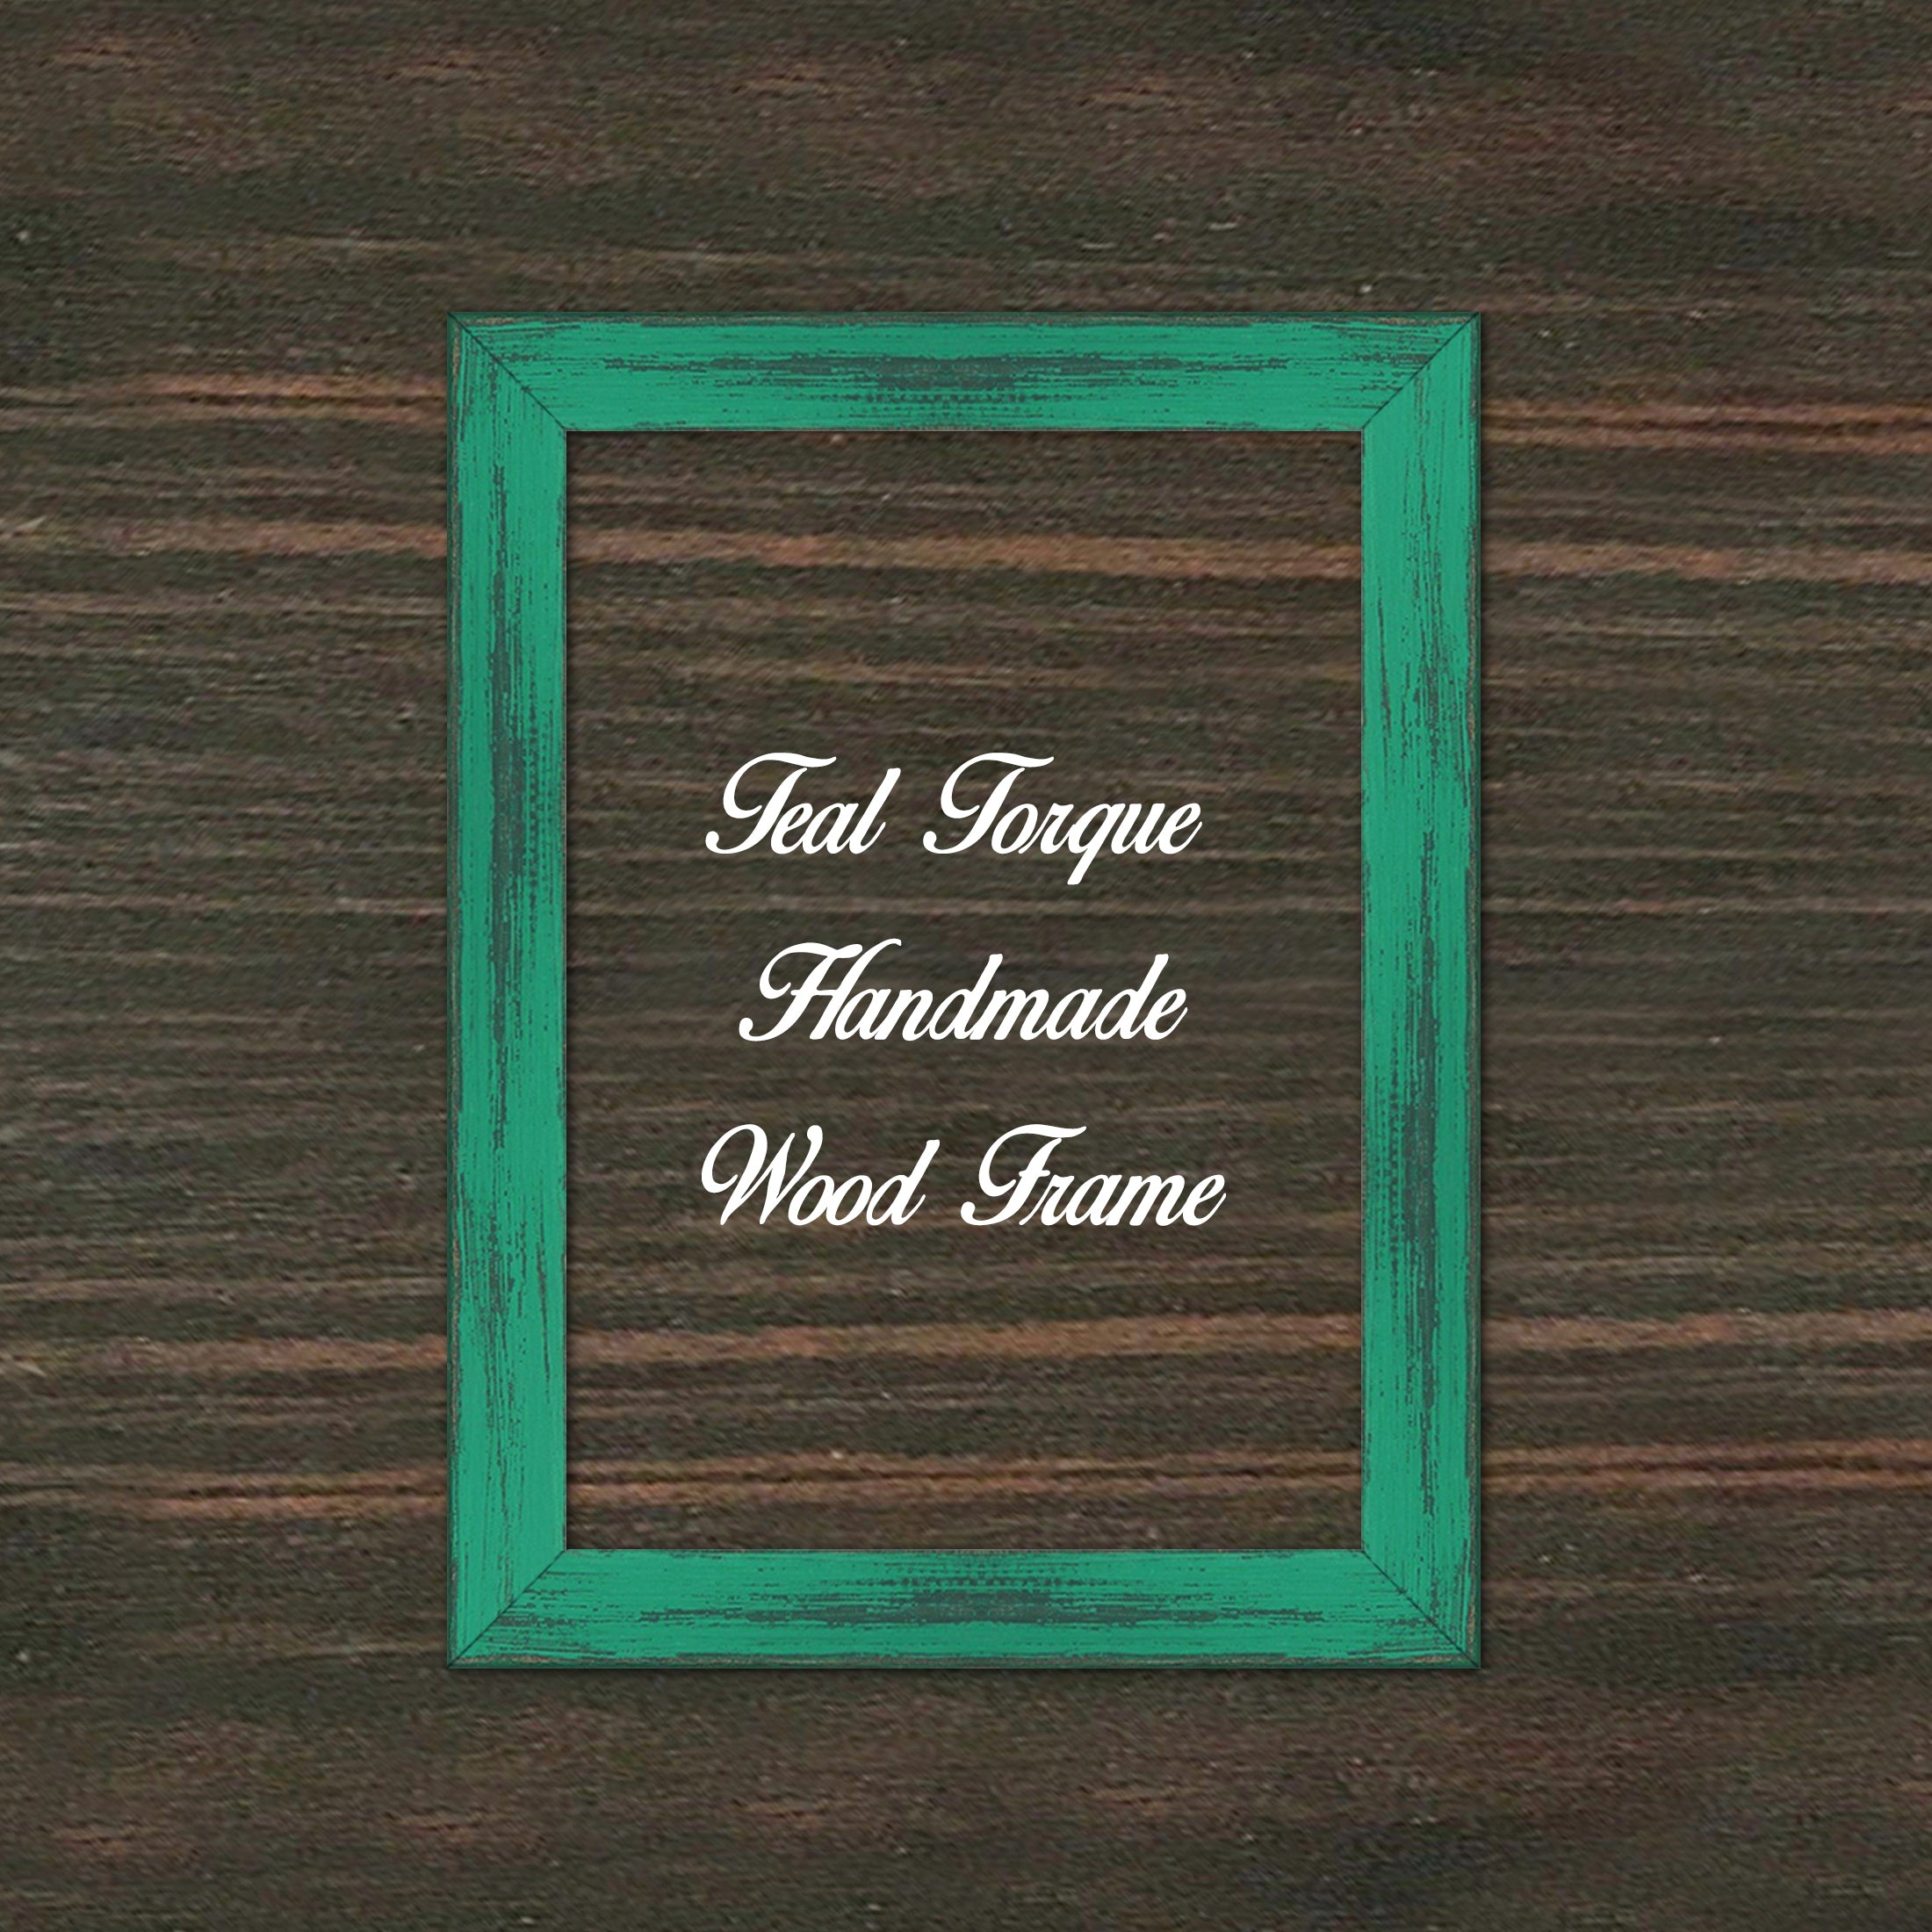 Teal Torque Wood Frame Wholesale Farmhouse Shabby Chic Picture Photo Poster Art Home Decor